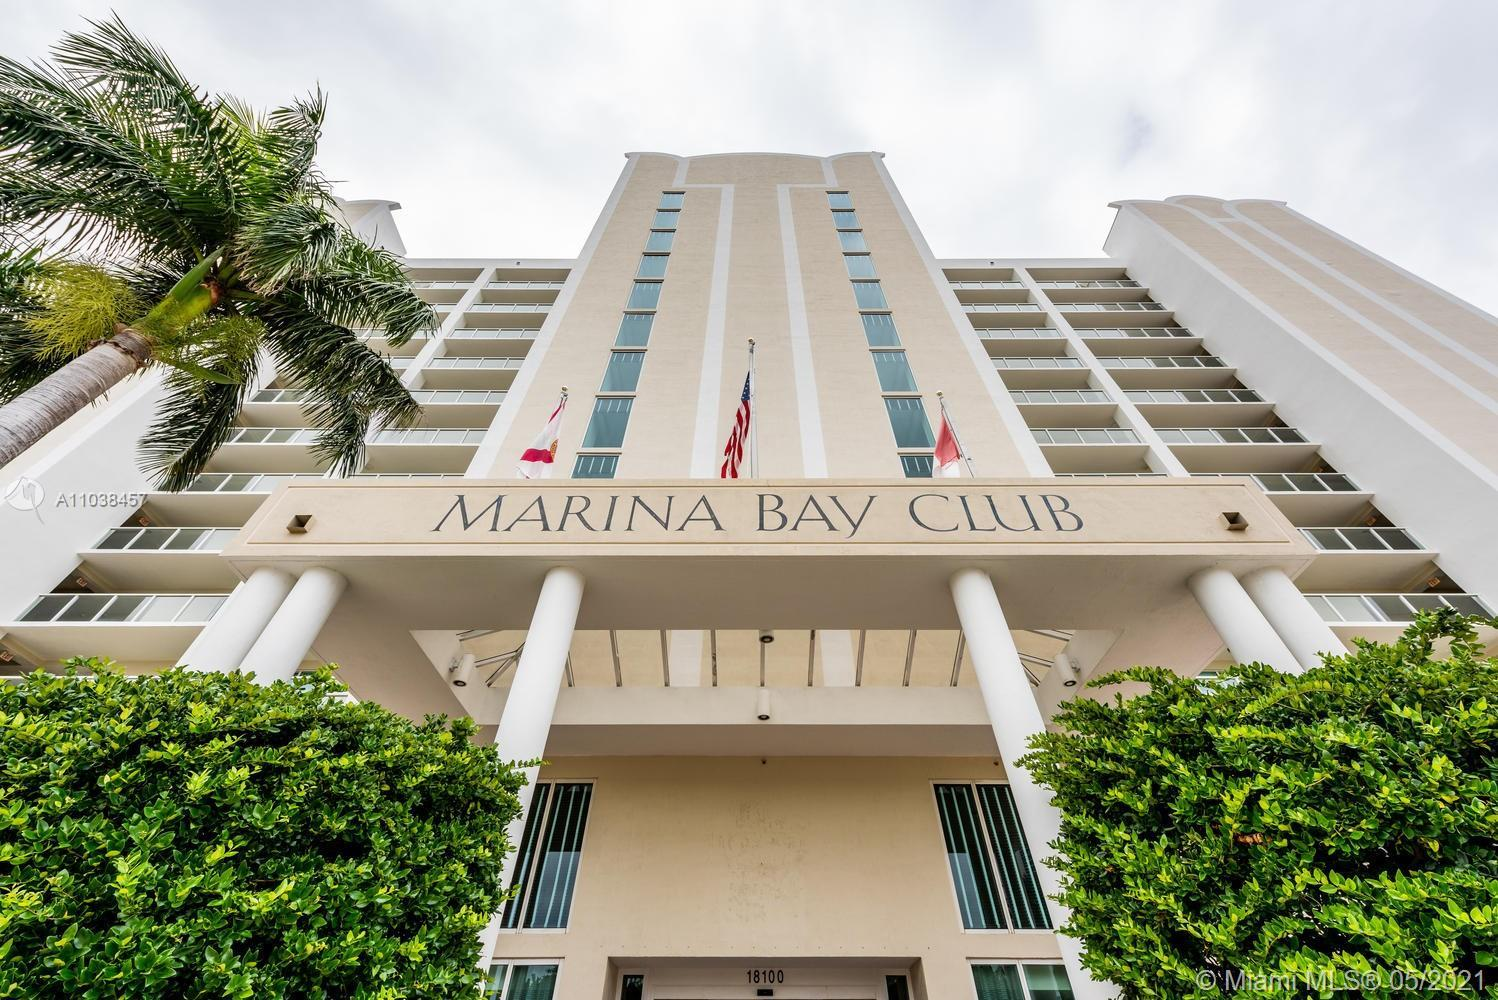 Marina Bay Club, Spectacular Intracoastal View from this 2Beds/2Bath Condo-Hotel in the Hearth of Su